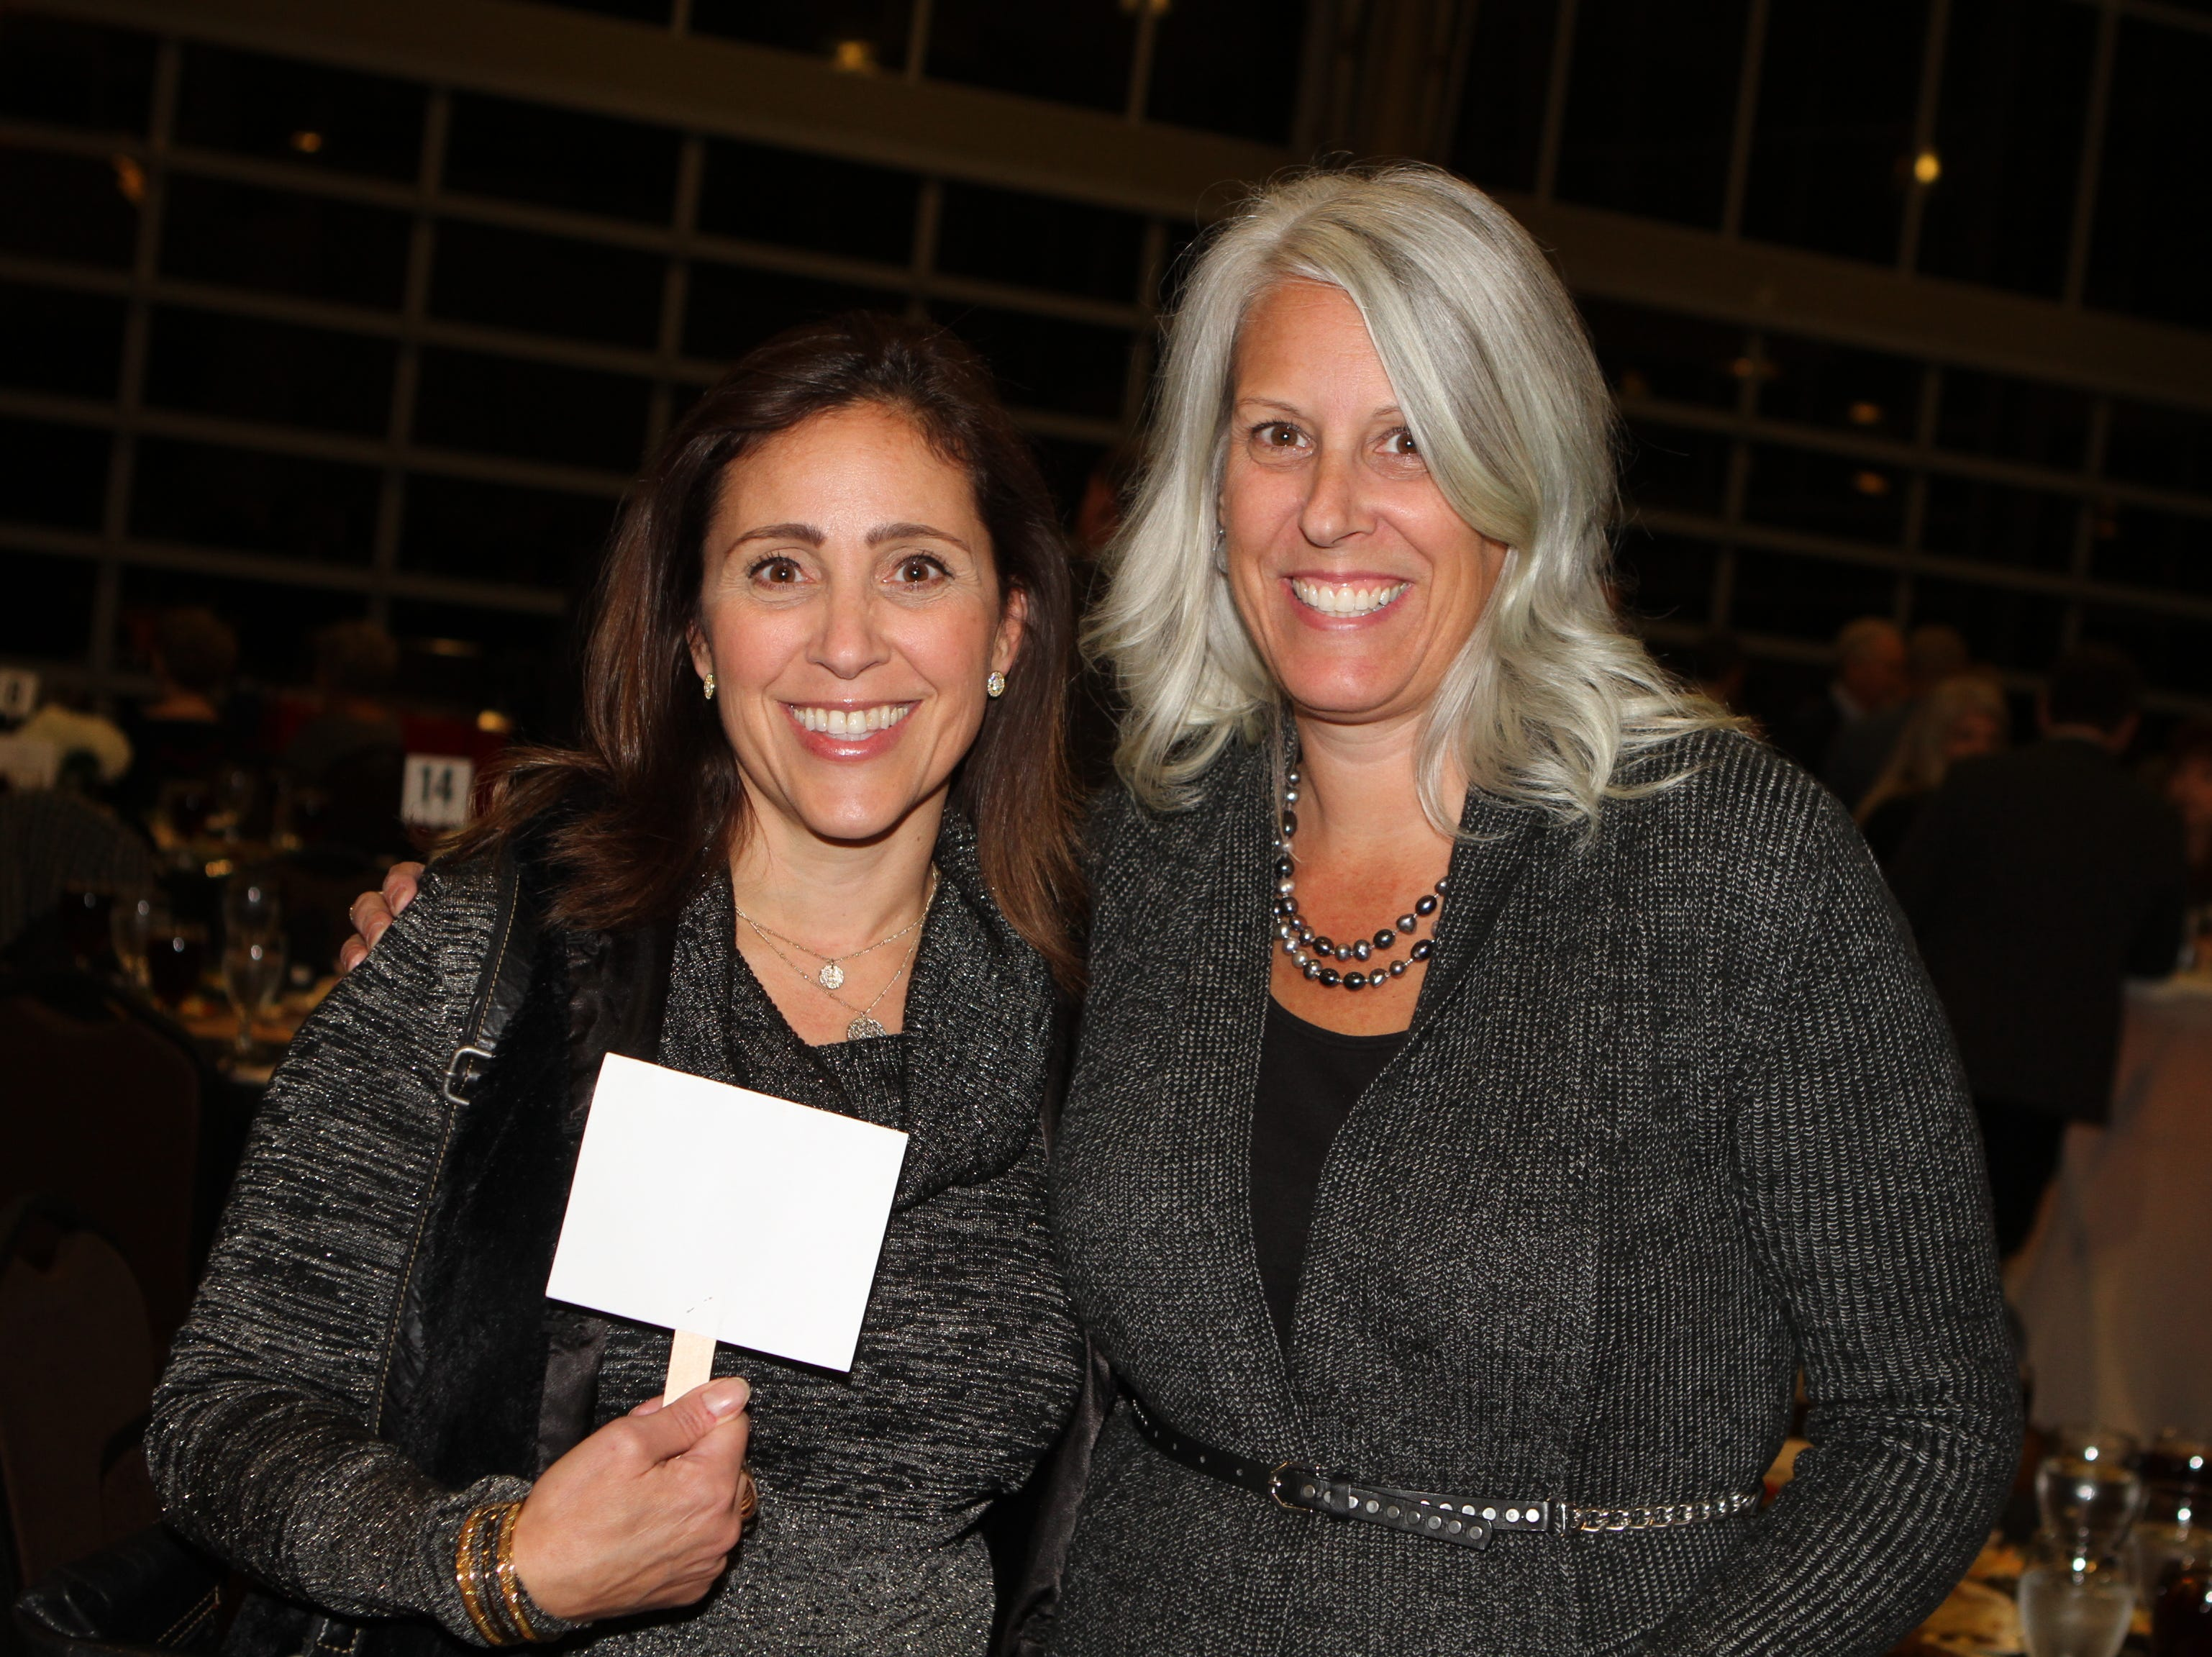 Michelle Newell and Yvonne Chamberlain at CMC Education Foundation's annual fundraiser Vision to Reality on Friday, November 2, 2018